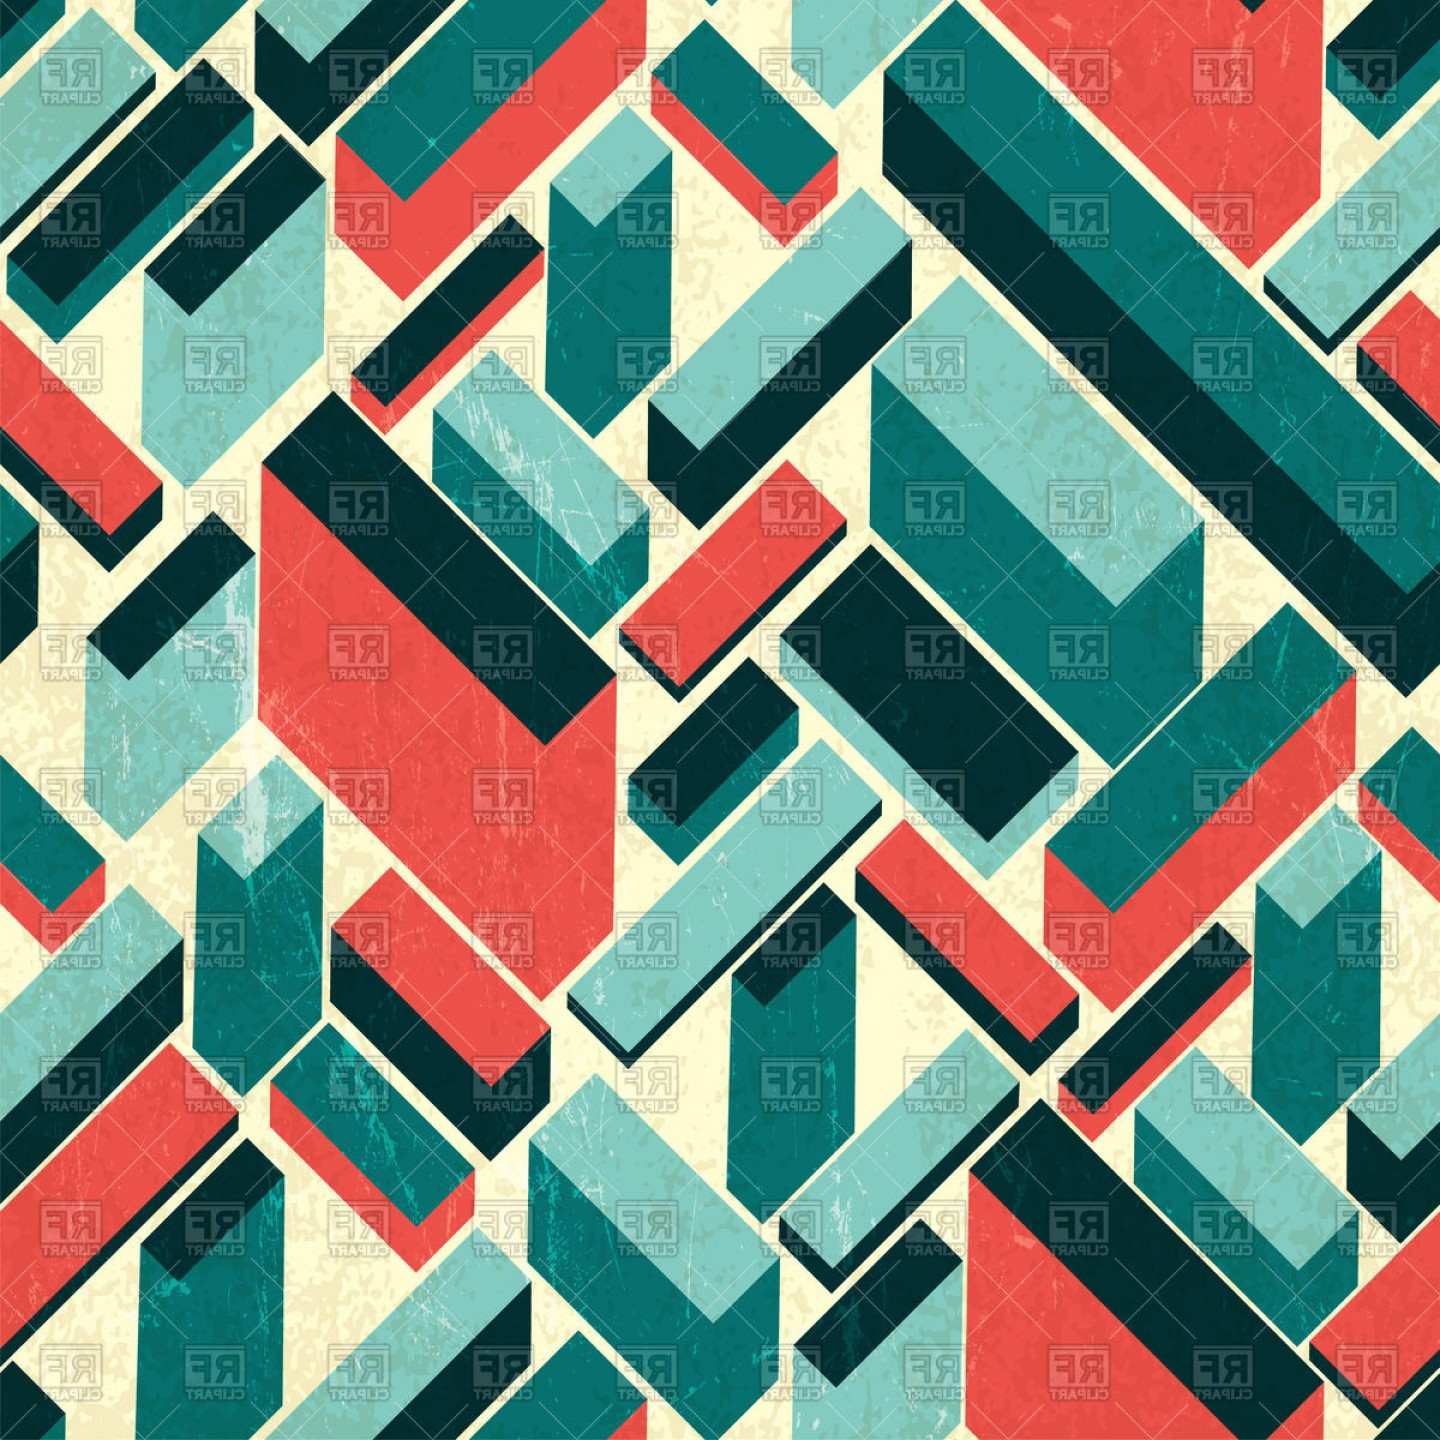 Geometric Vector B2: Seamless Retro Background With Geometric Shapes Vector Clipart